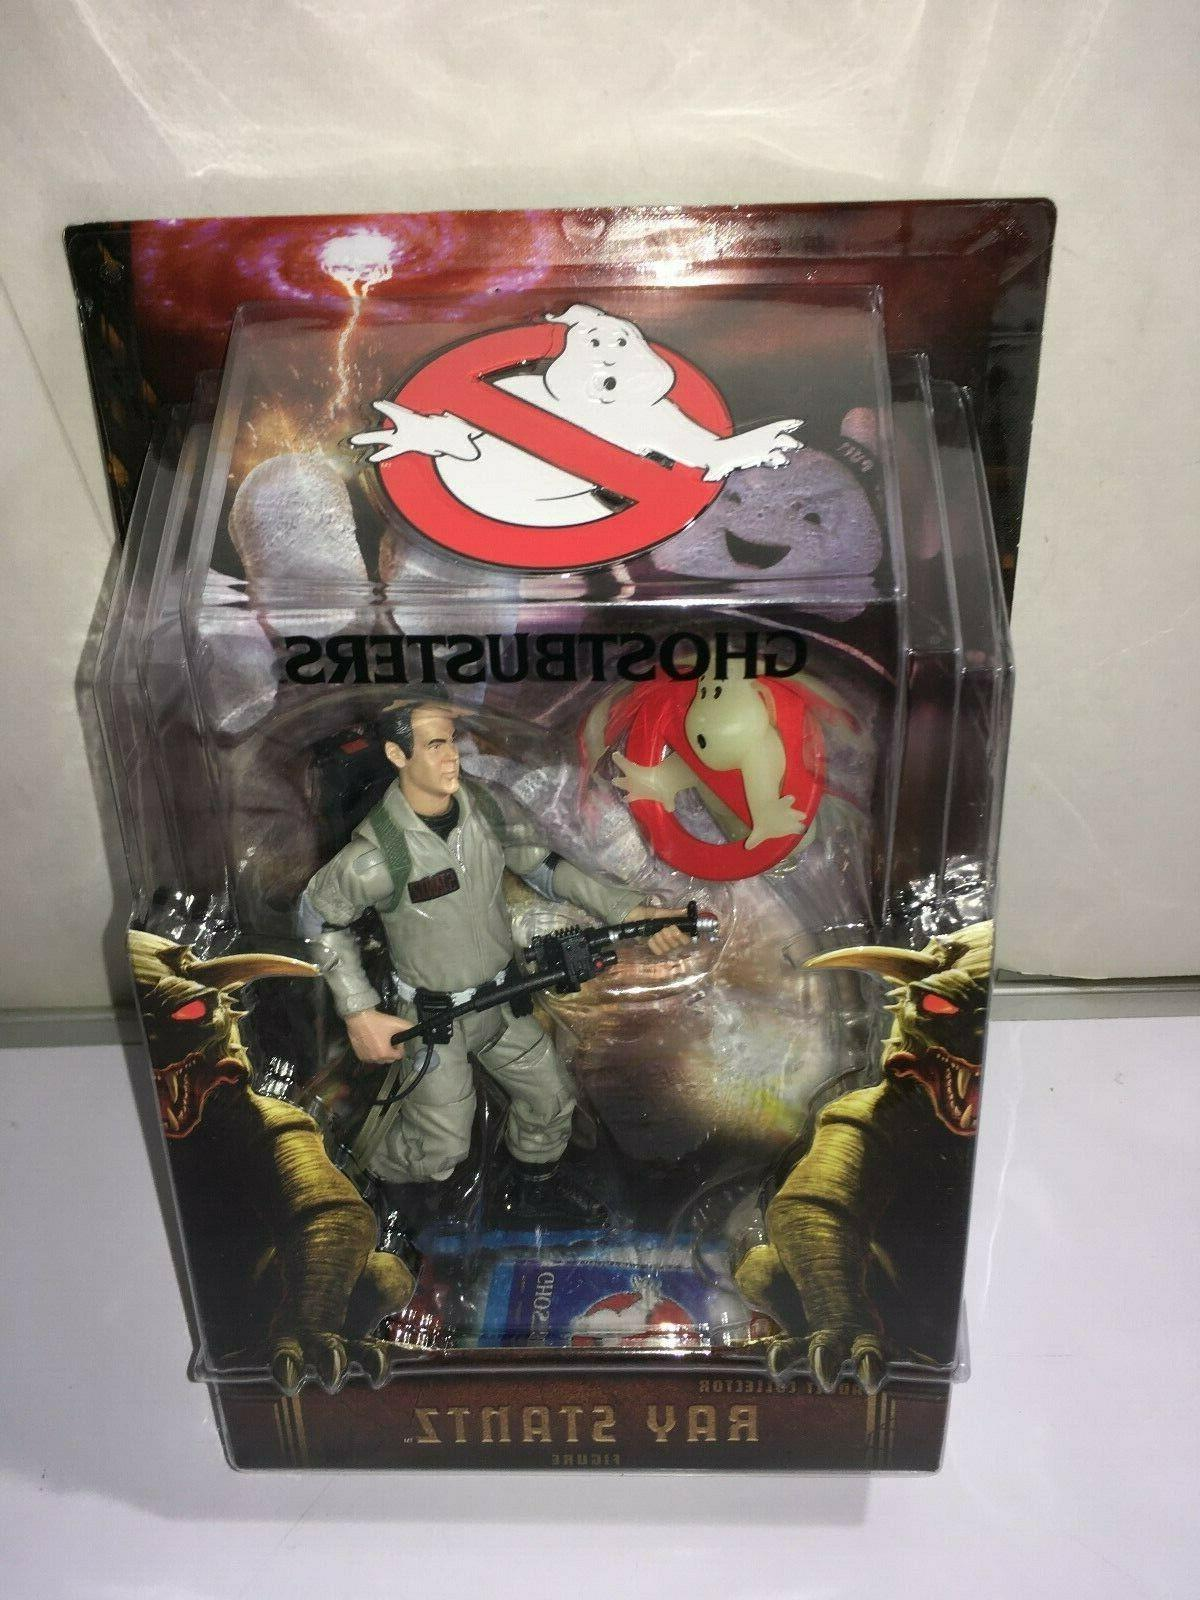 matty 2009 ghostbusters adult collector 6 ray